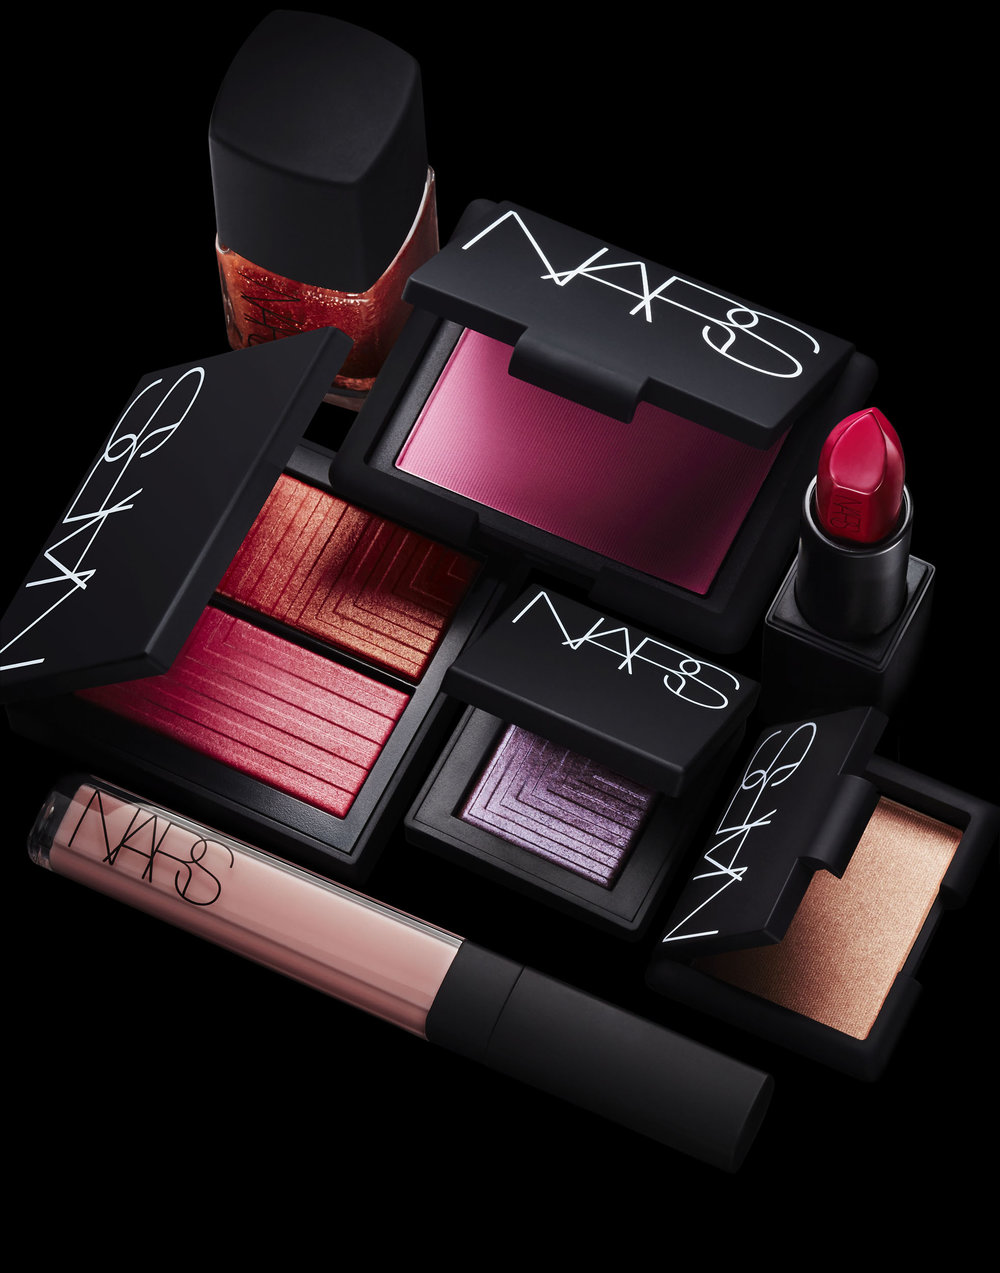 161019 NARS Tight Group A.jpg